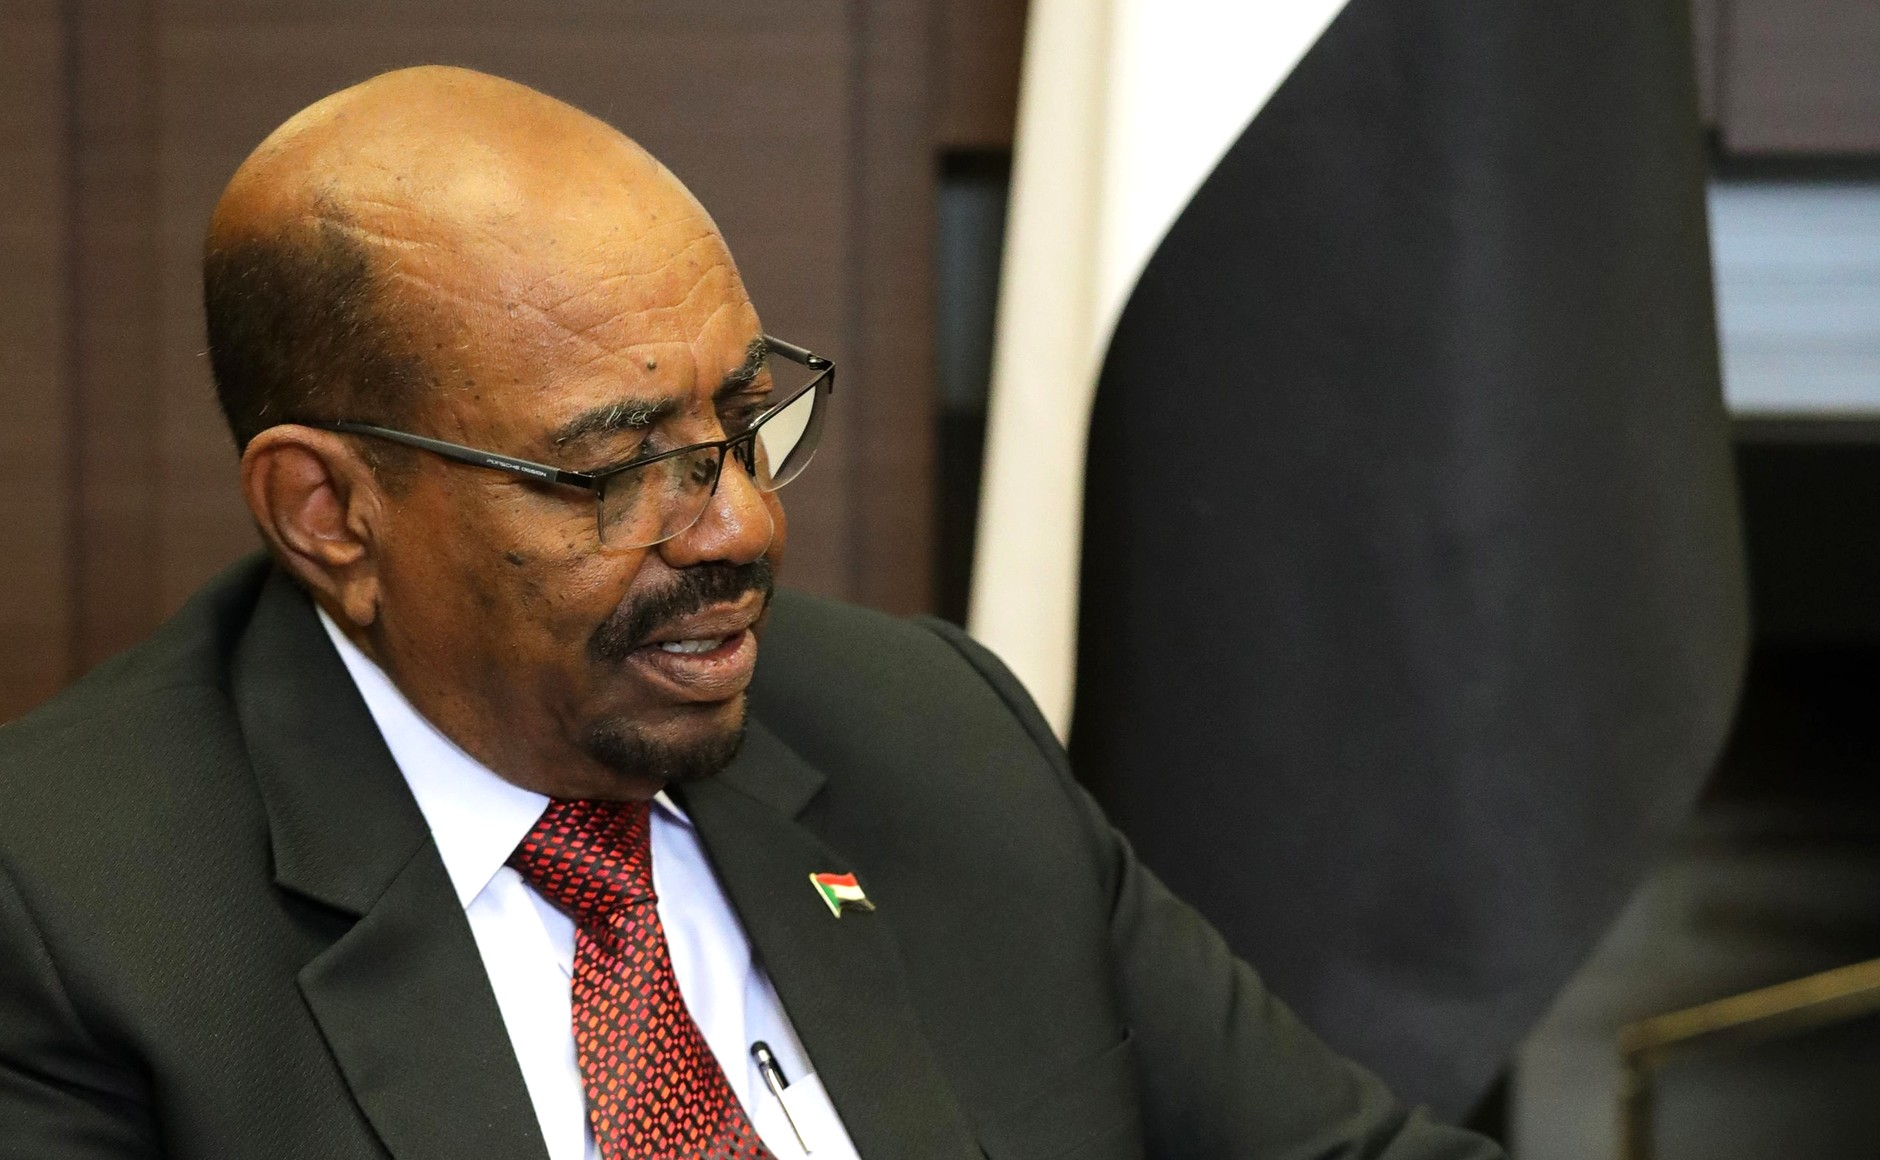 Ousted Sudan president al-Bashir on trial for corruption